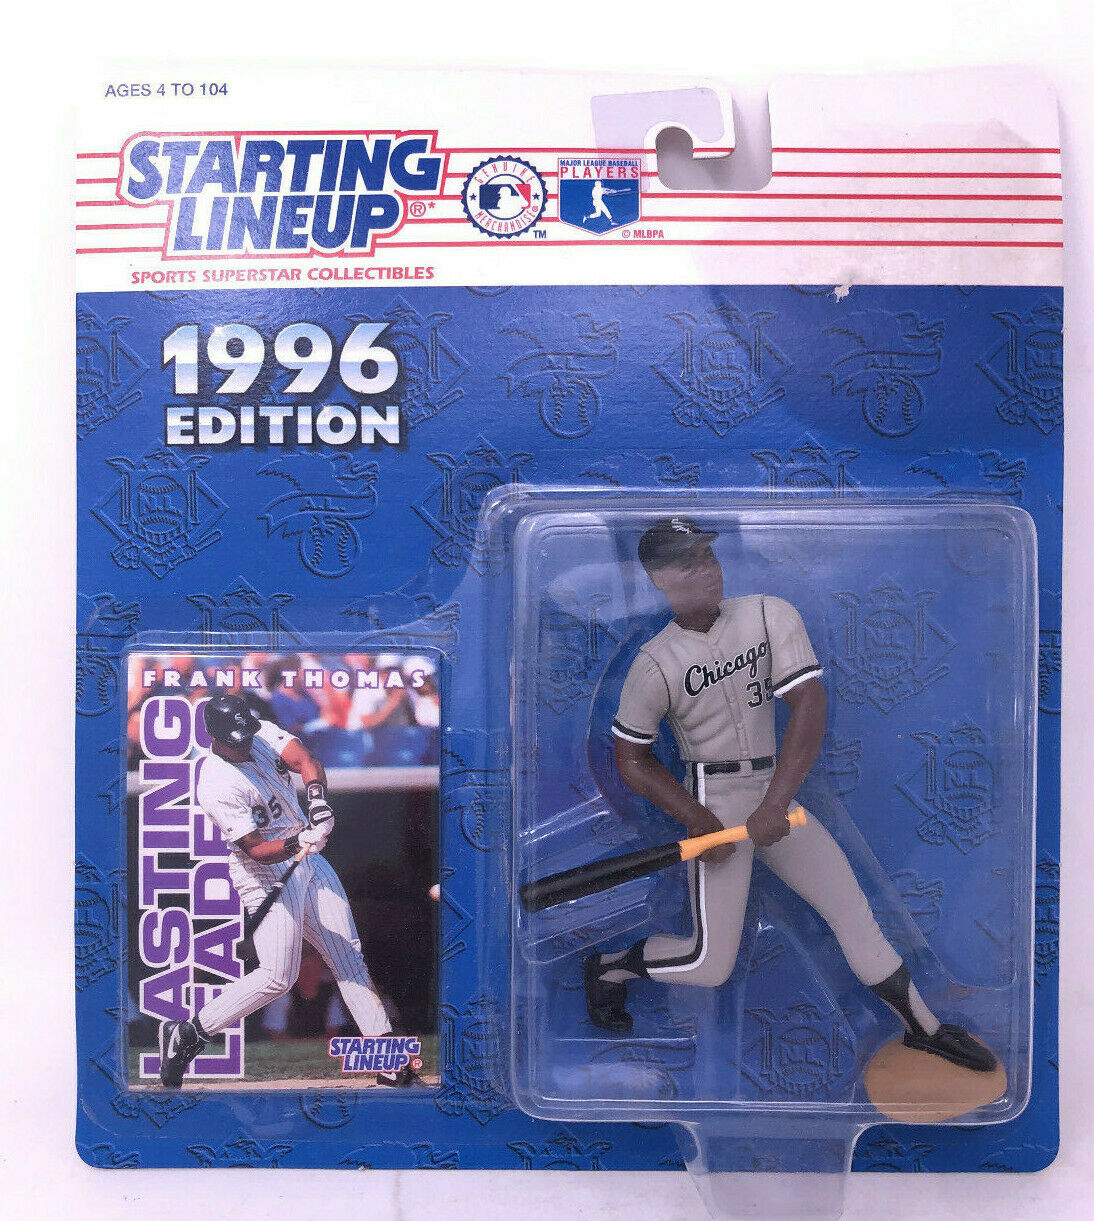 1996 Barry Bonds Figure and Baseball Card Sports Superstar Collectibles Hasbro-Kenner